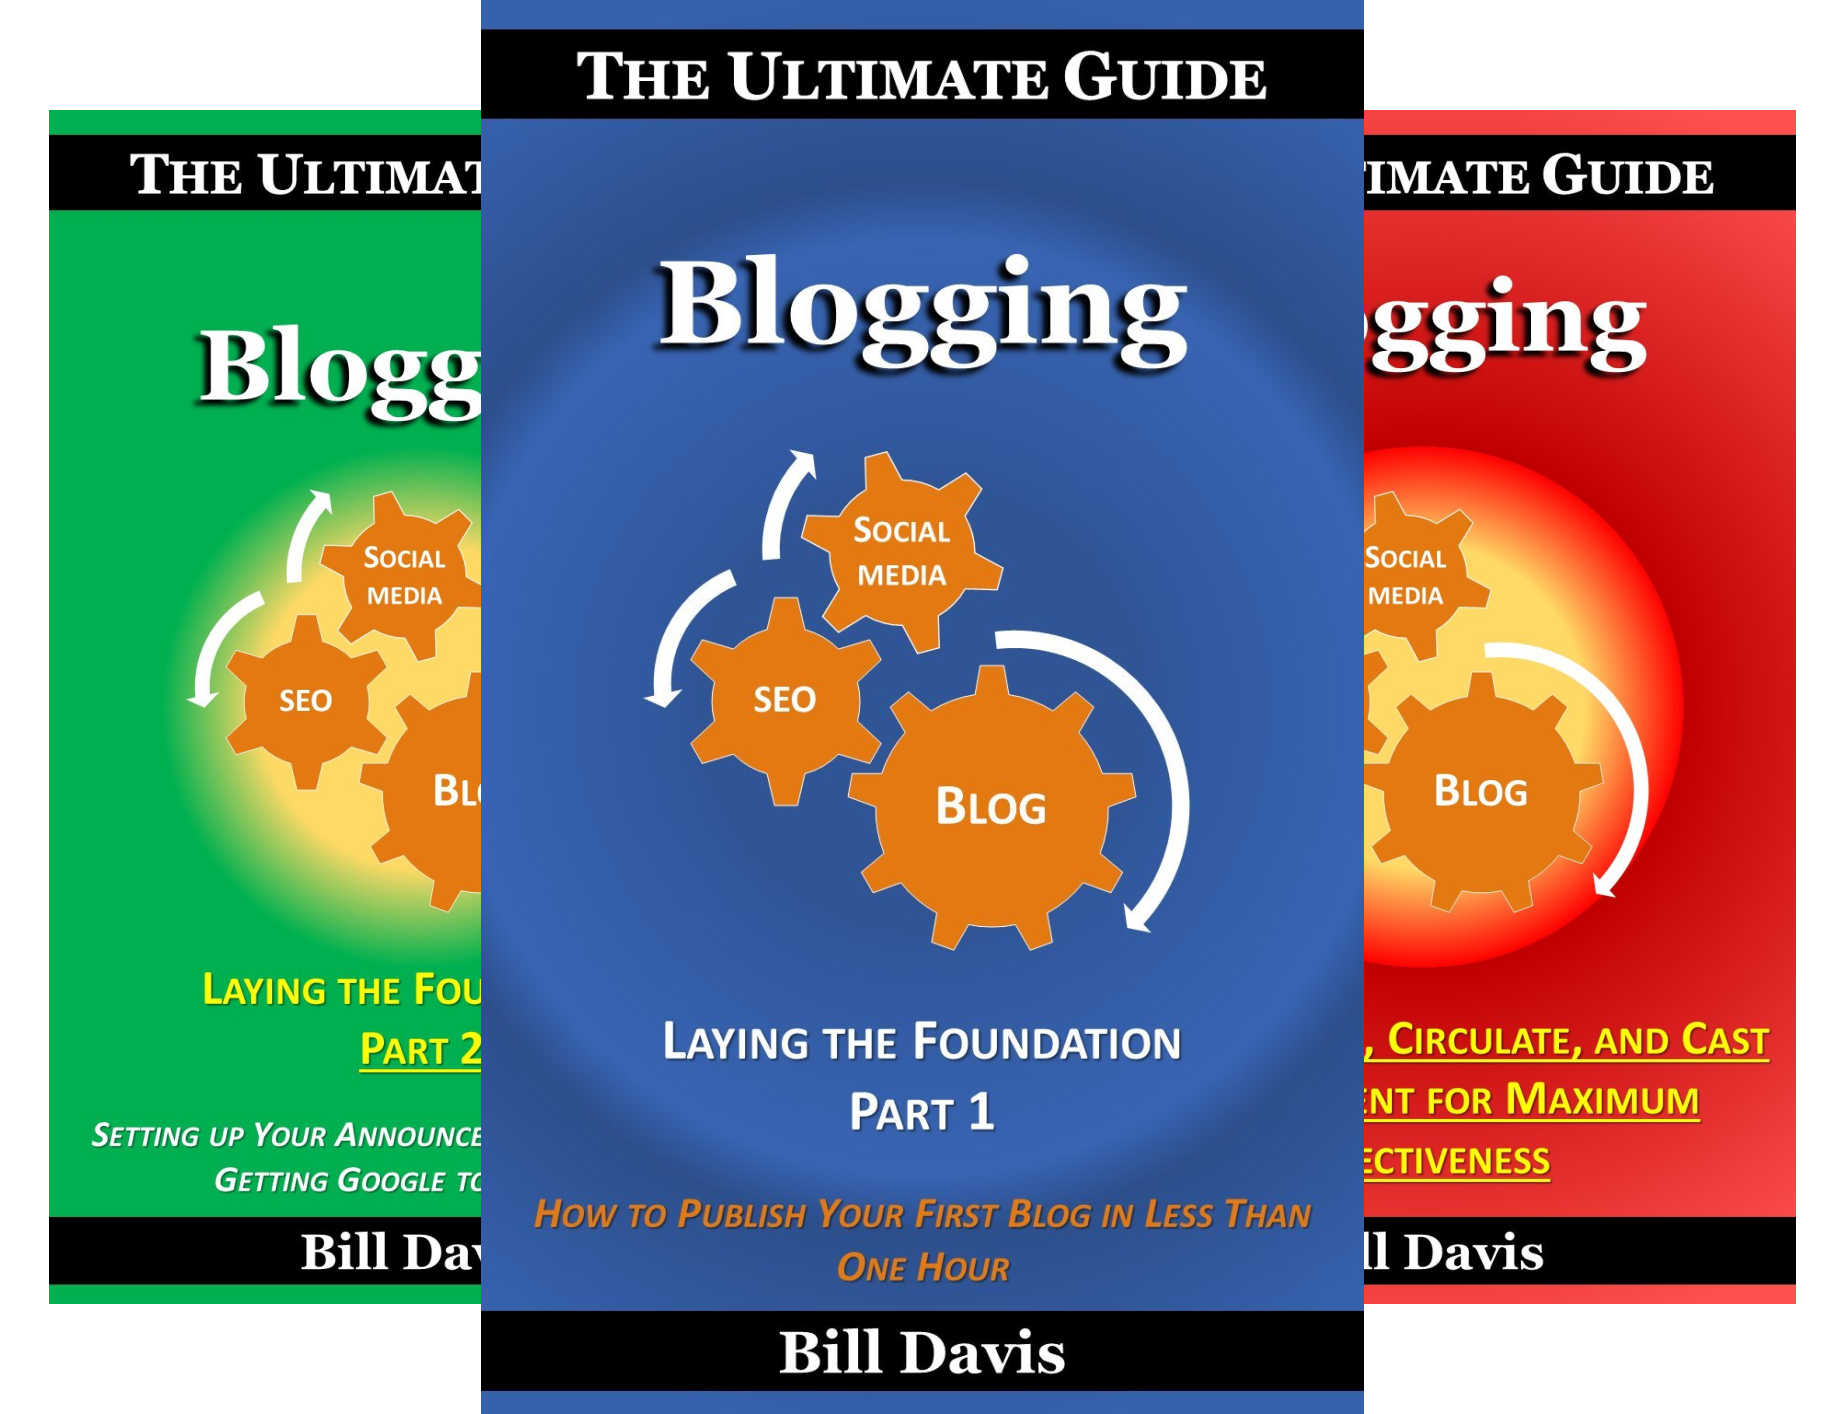 The Ultimate Guide To Blogging (4 Book Series) Pdf